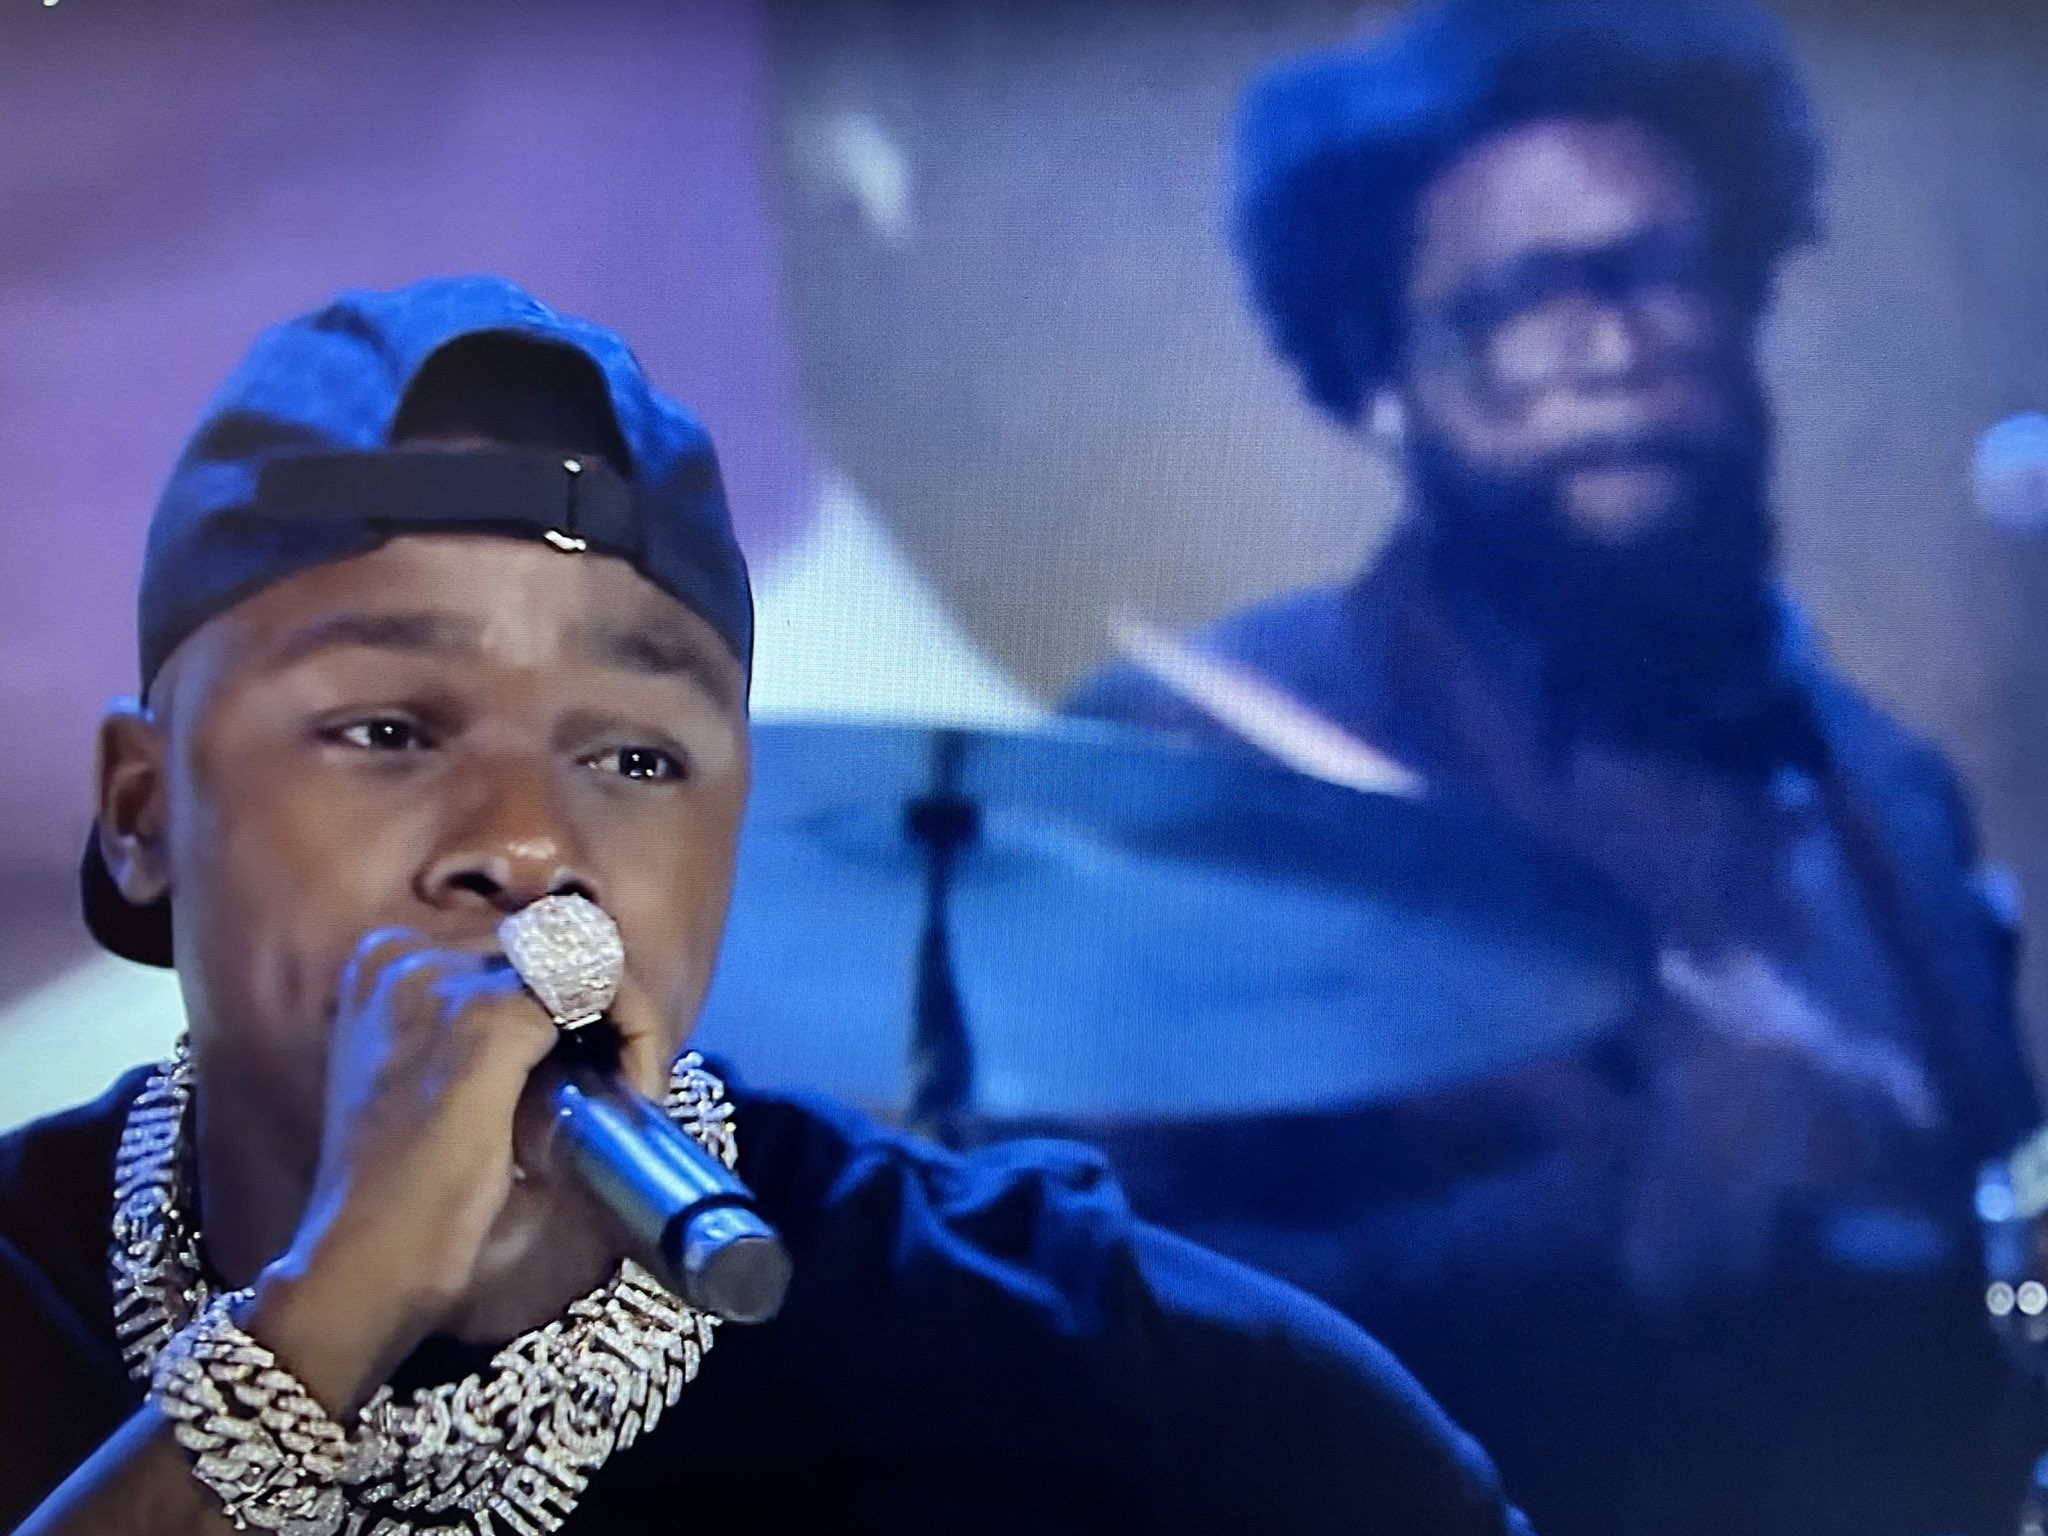 DaBaby says he doesn't know who Questlove is after receiving criticism for homophobic comments